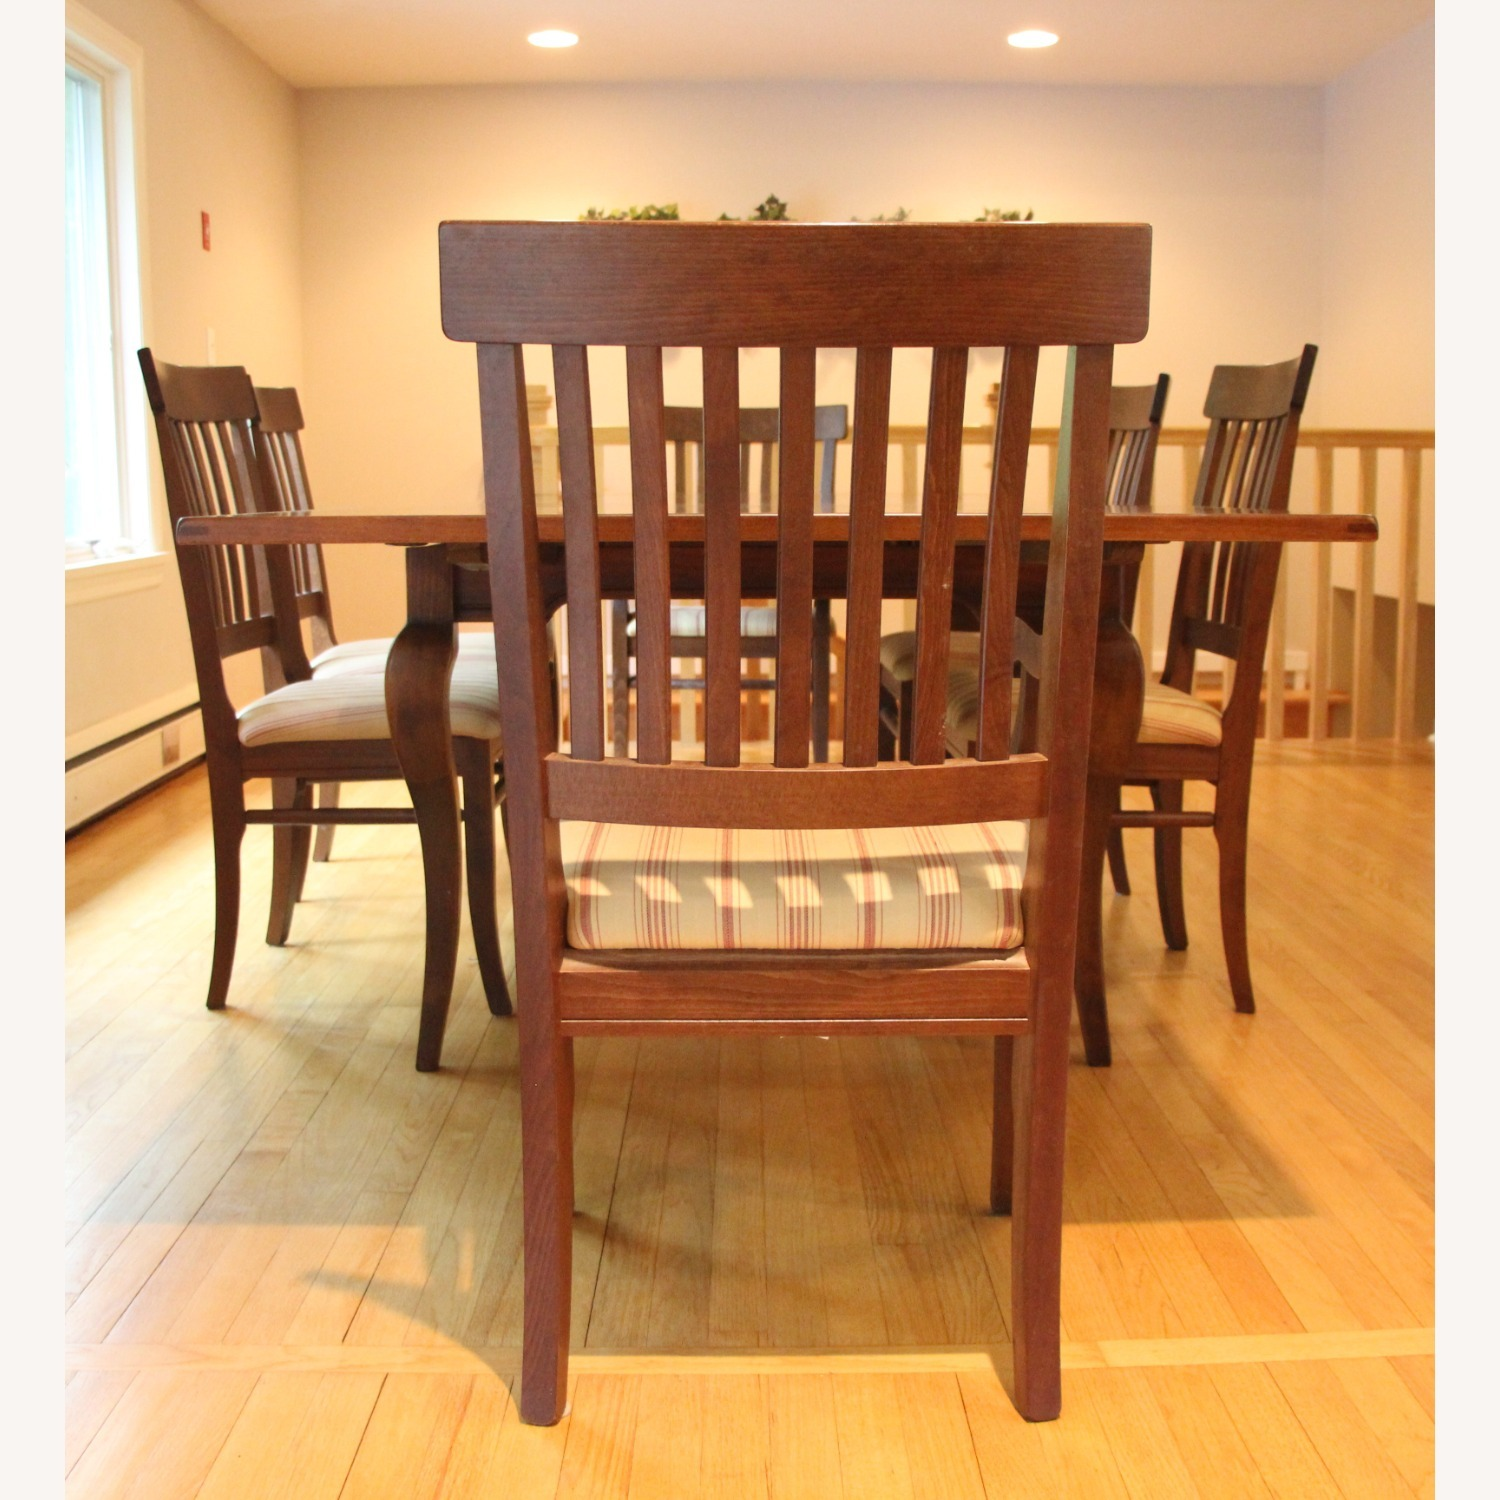 Arhaus Maple Dining Table and Chairs - image-10